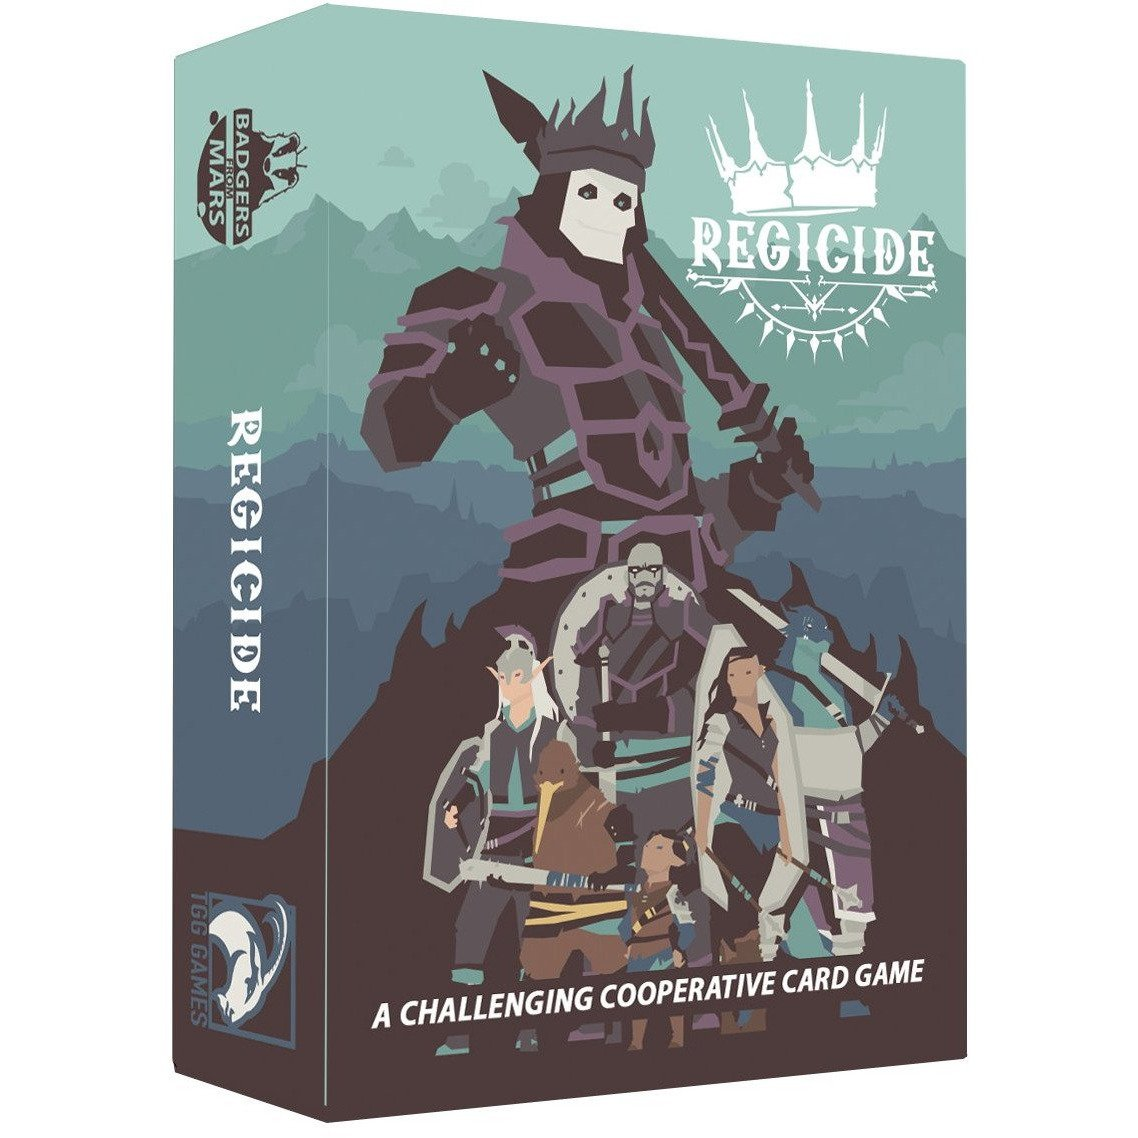 Regicide - TGG Games is Officially Released!